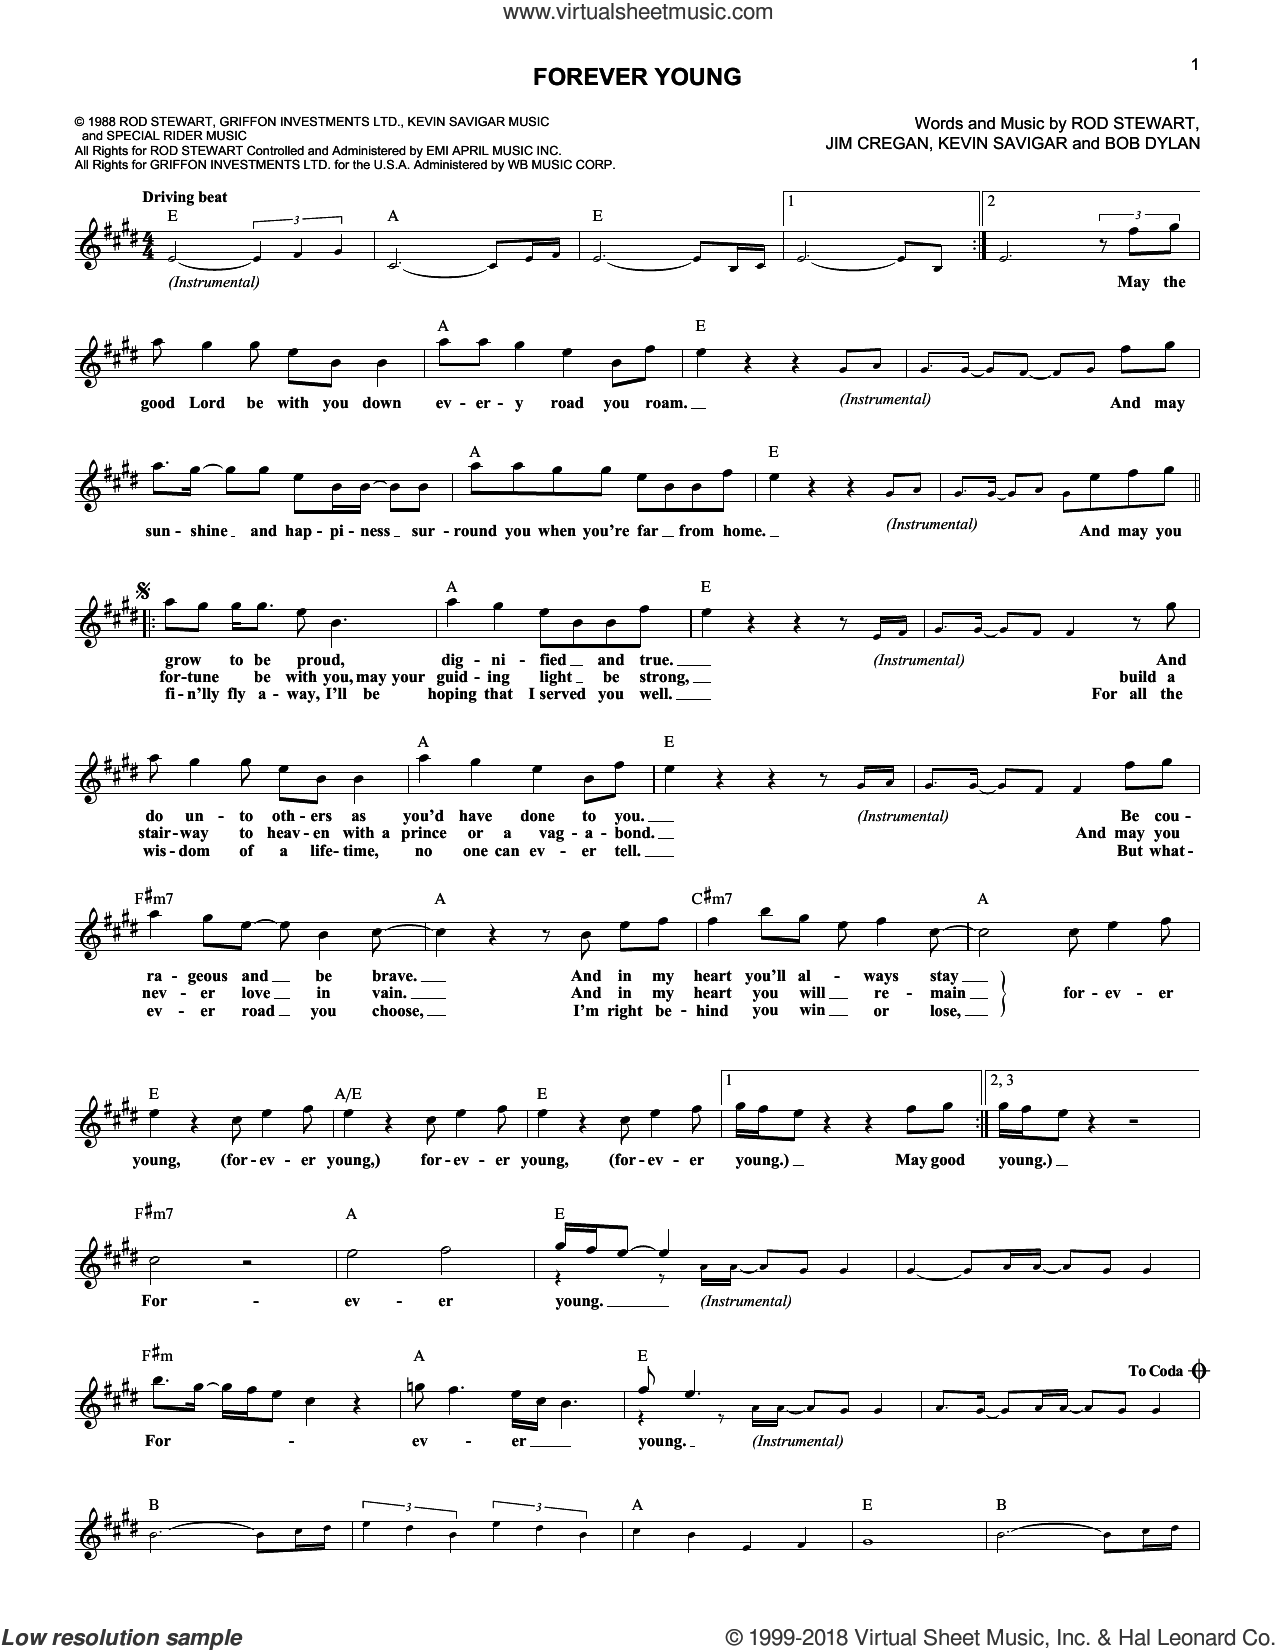 Forever Young sheet music for voice and other instruments (fake book) by Kevin Savigar, Bob Dylan, Jim Cregan and Rod Stewart. Score Image Preview.